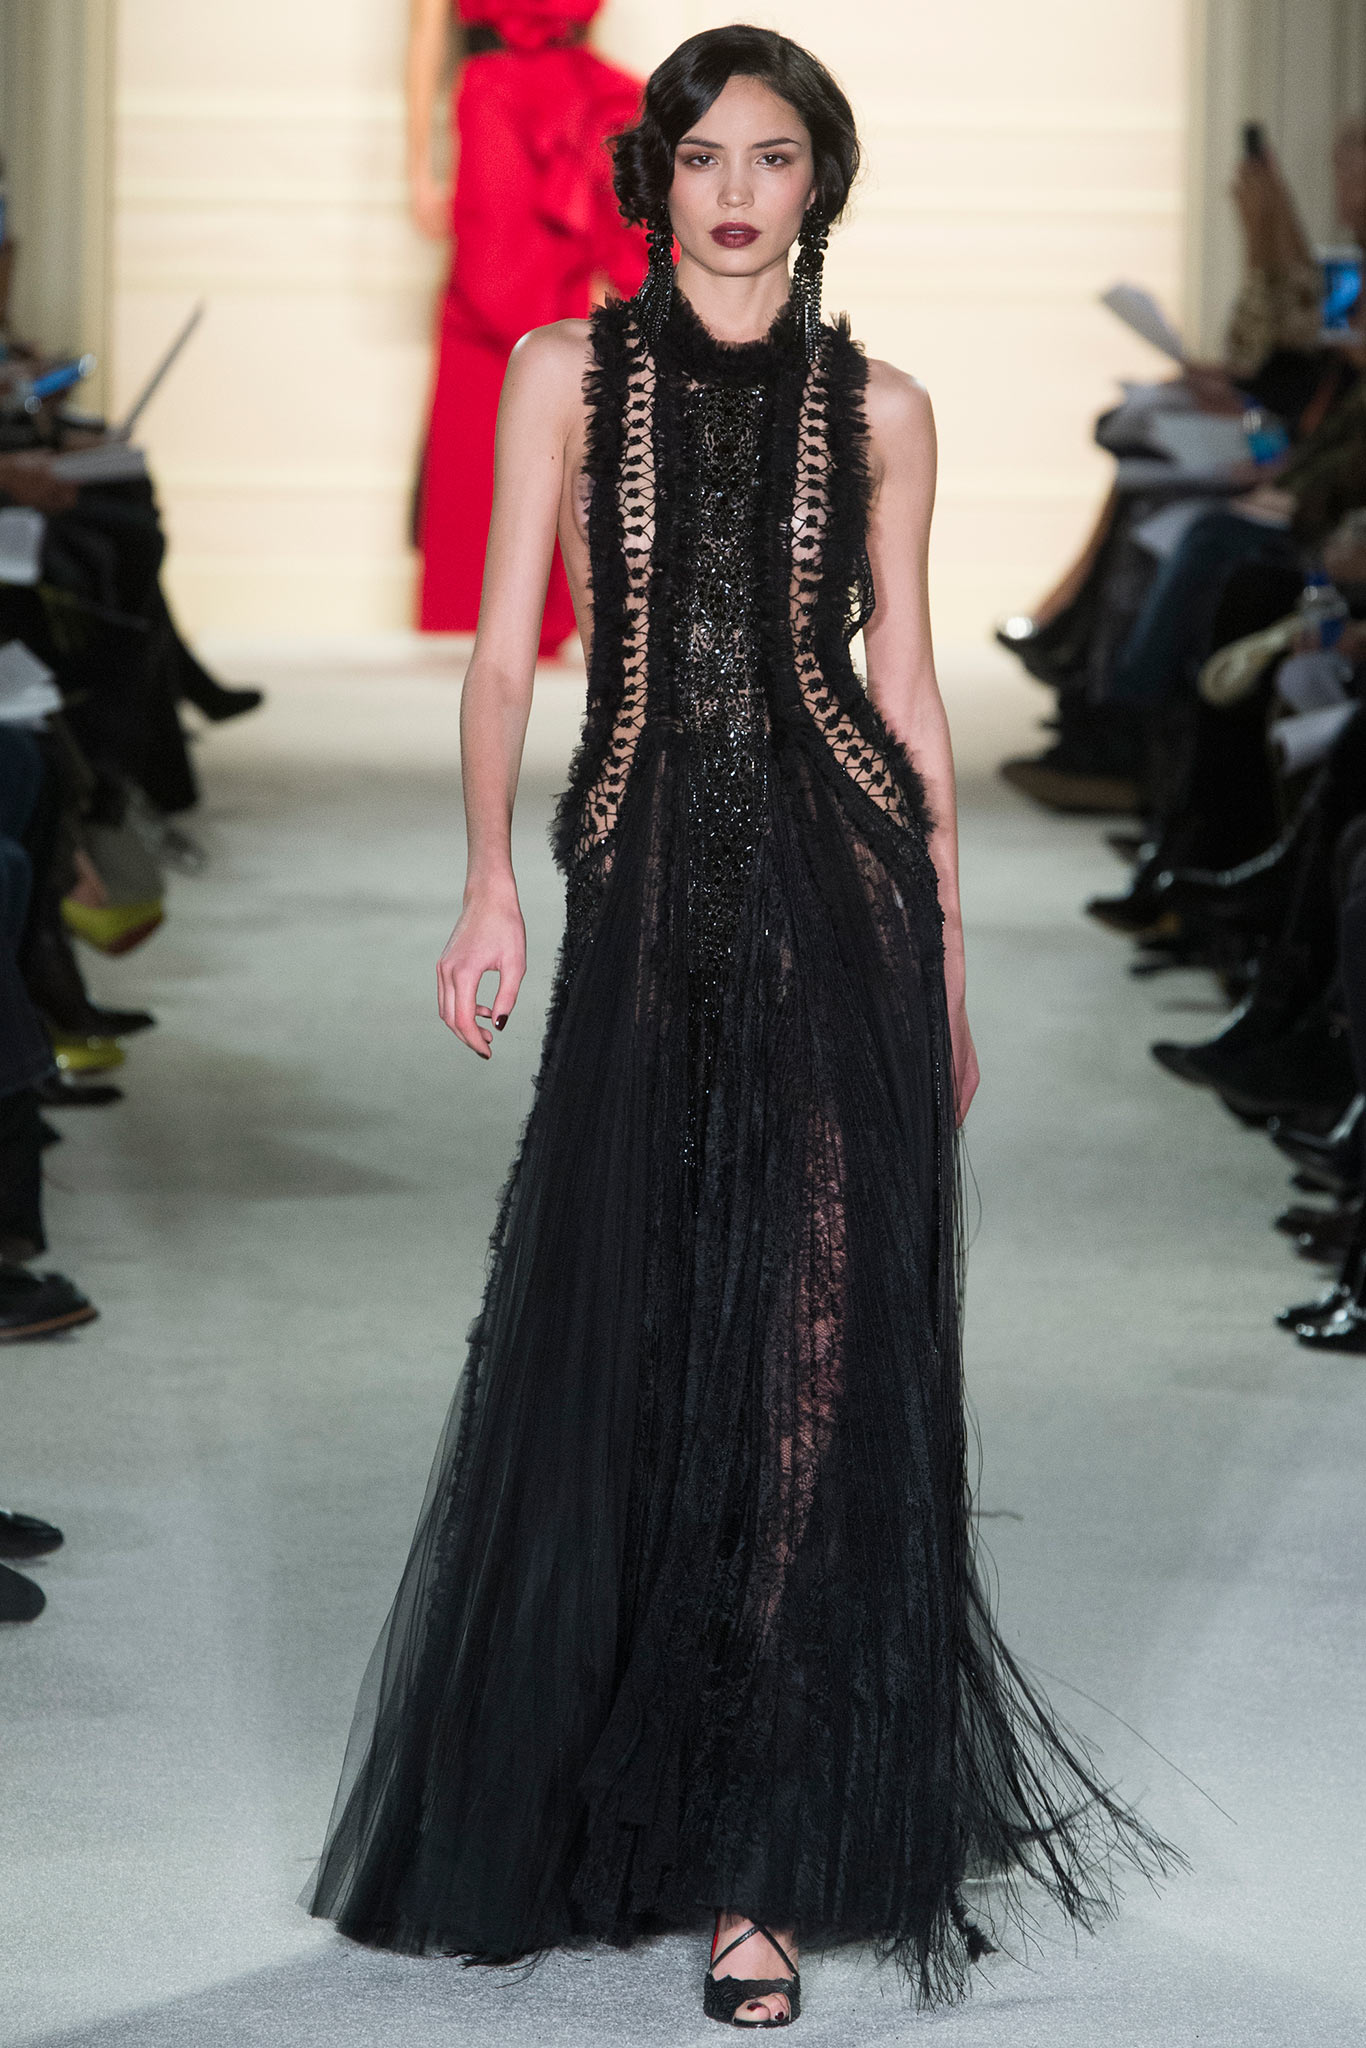 chrissy-teigen-in-marchesa-2015-mt